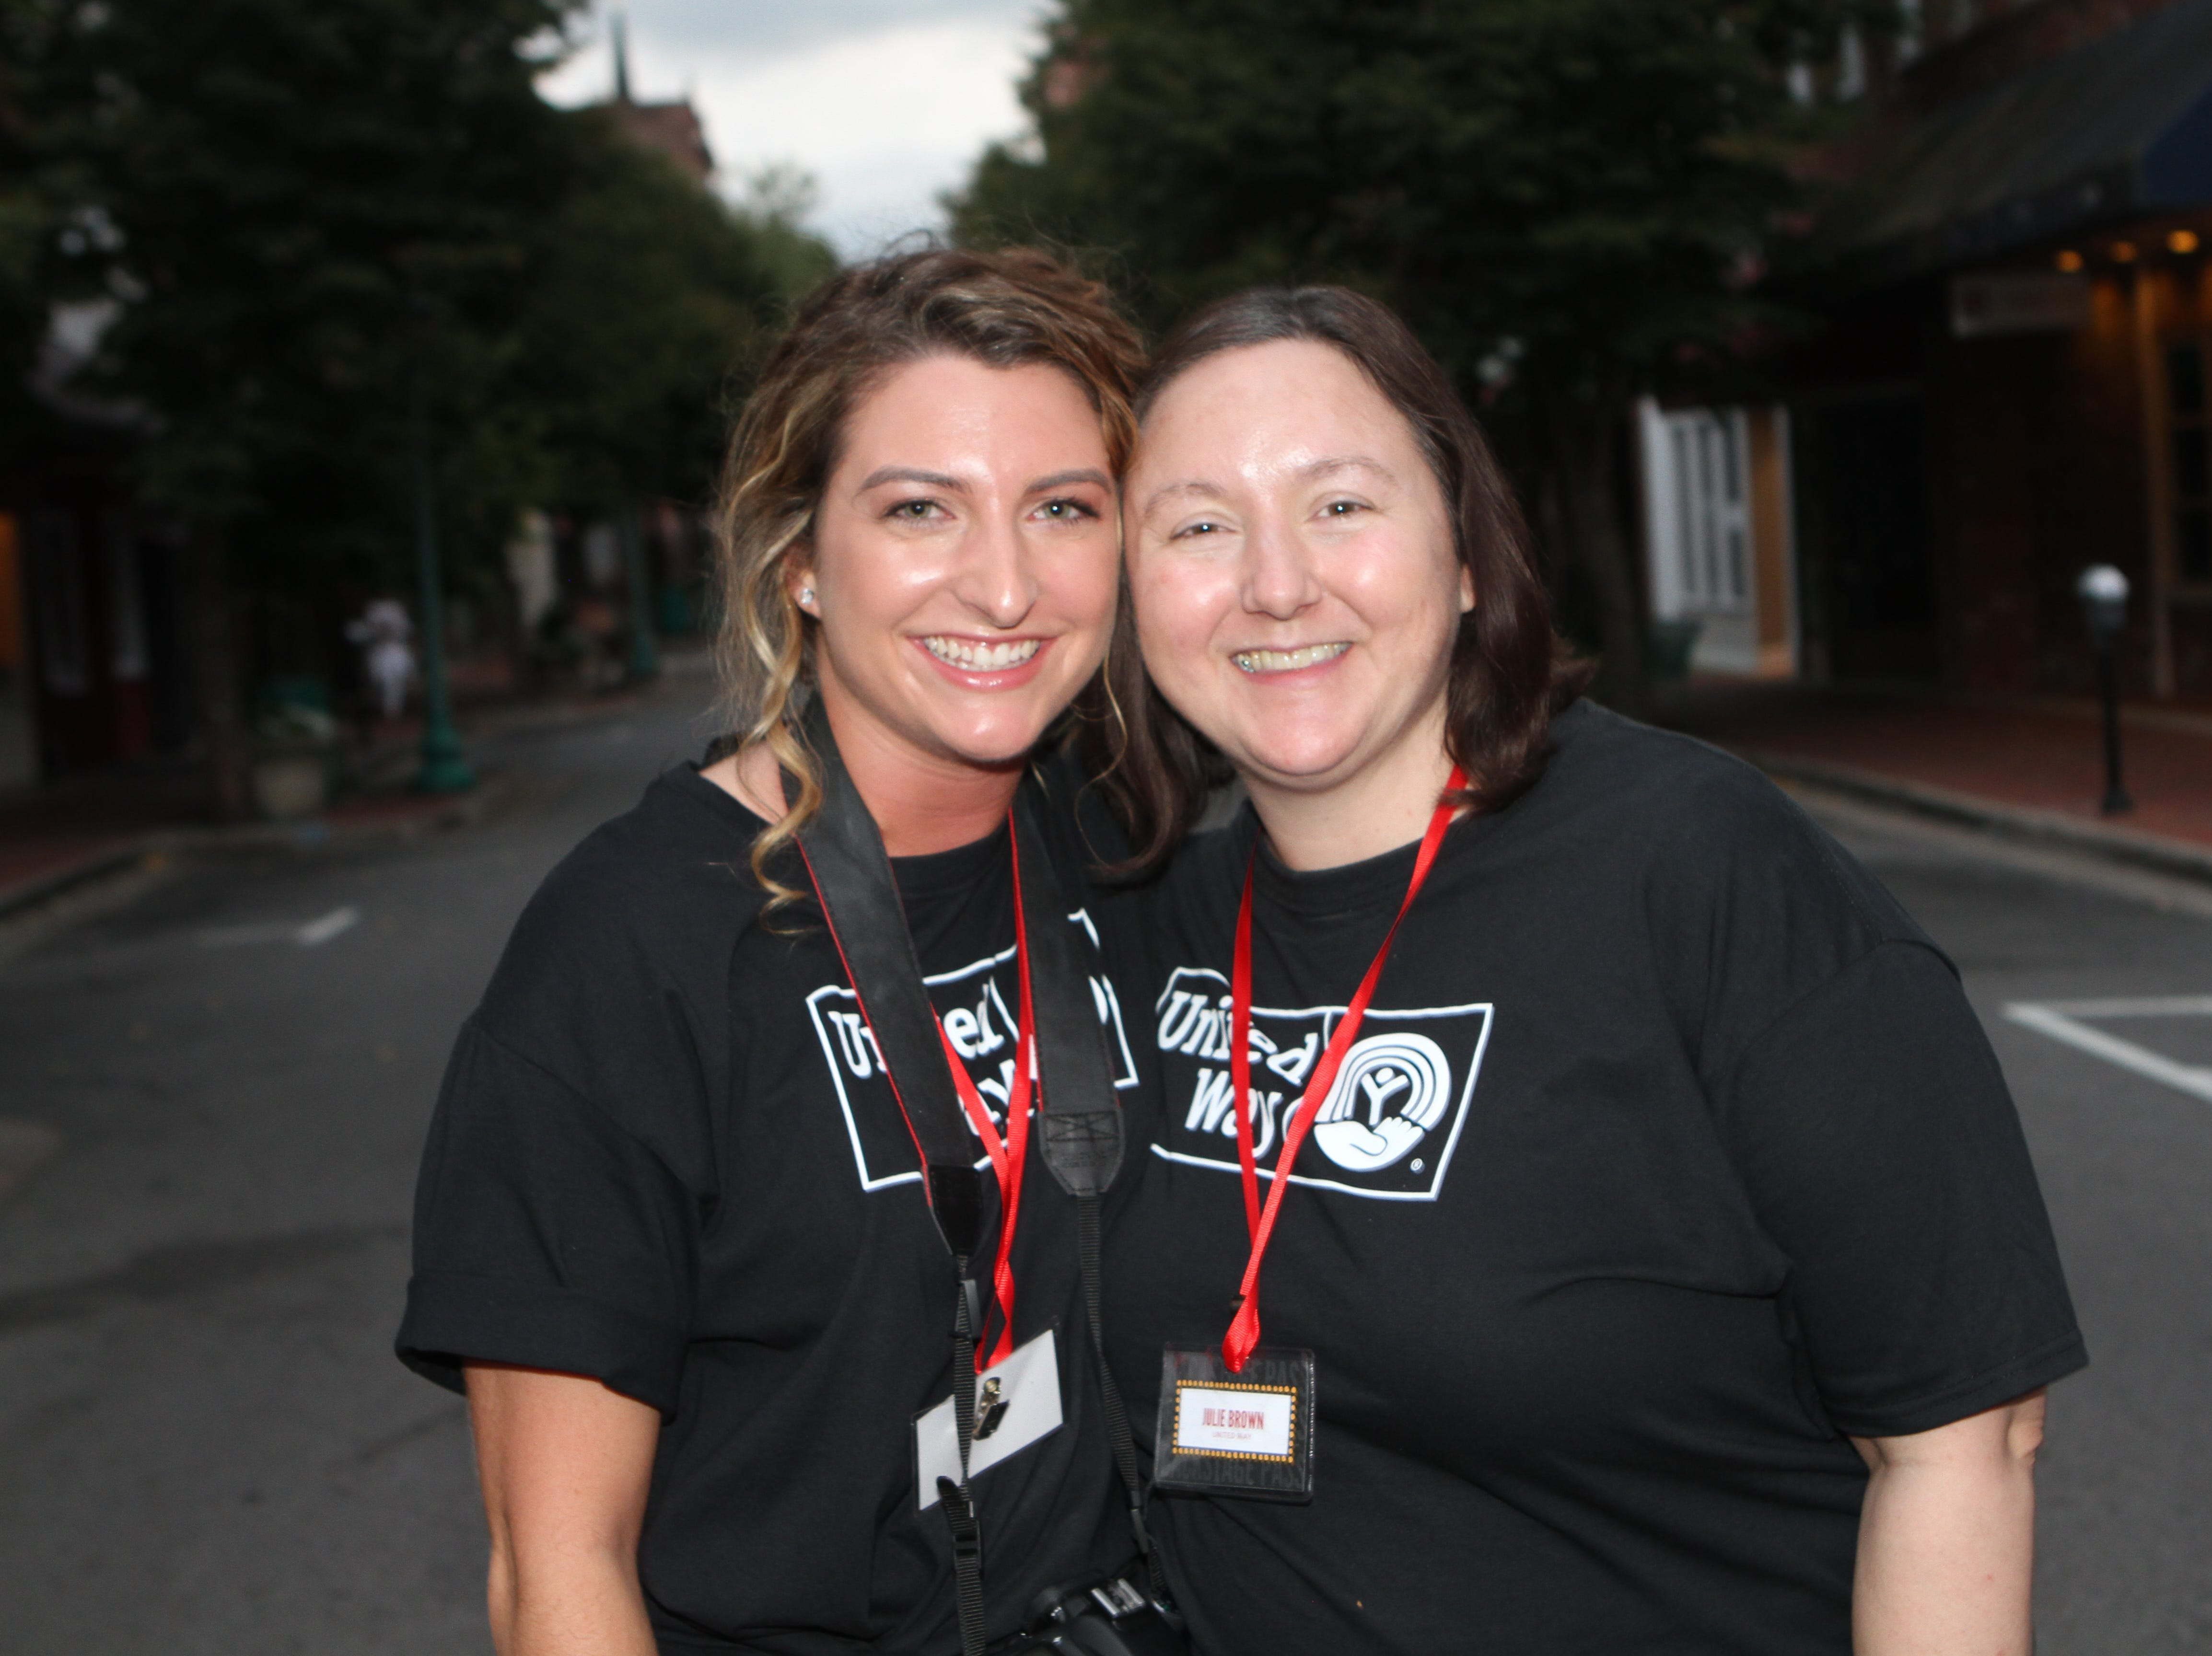 Hannah Byard and Julie Brown at the Roxy Regional Theatre for the United Way 2018 campaign fundraising event Thursday night.